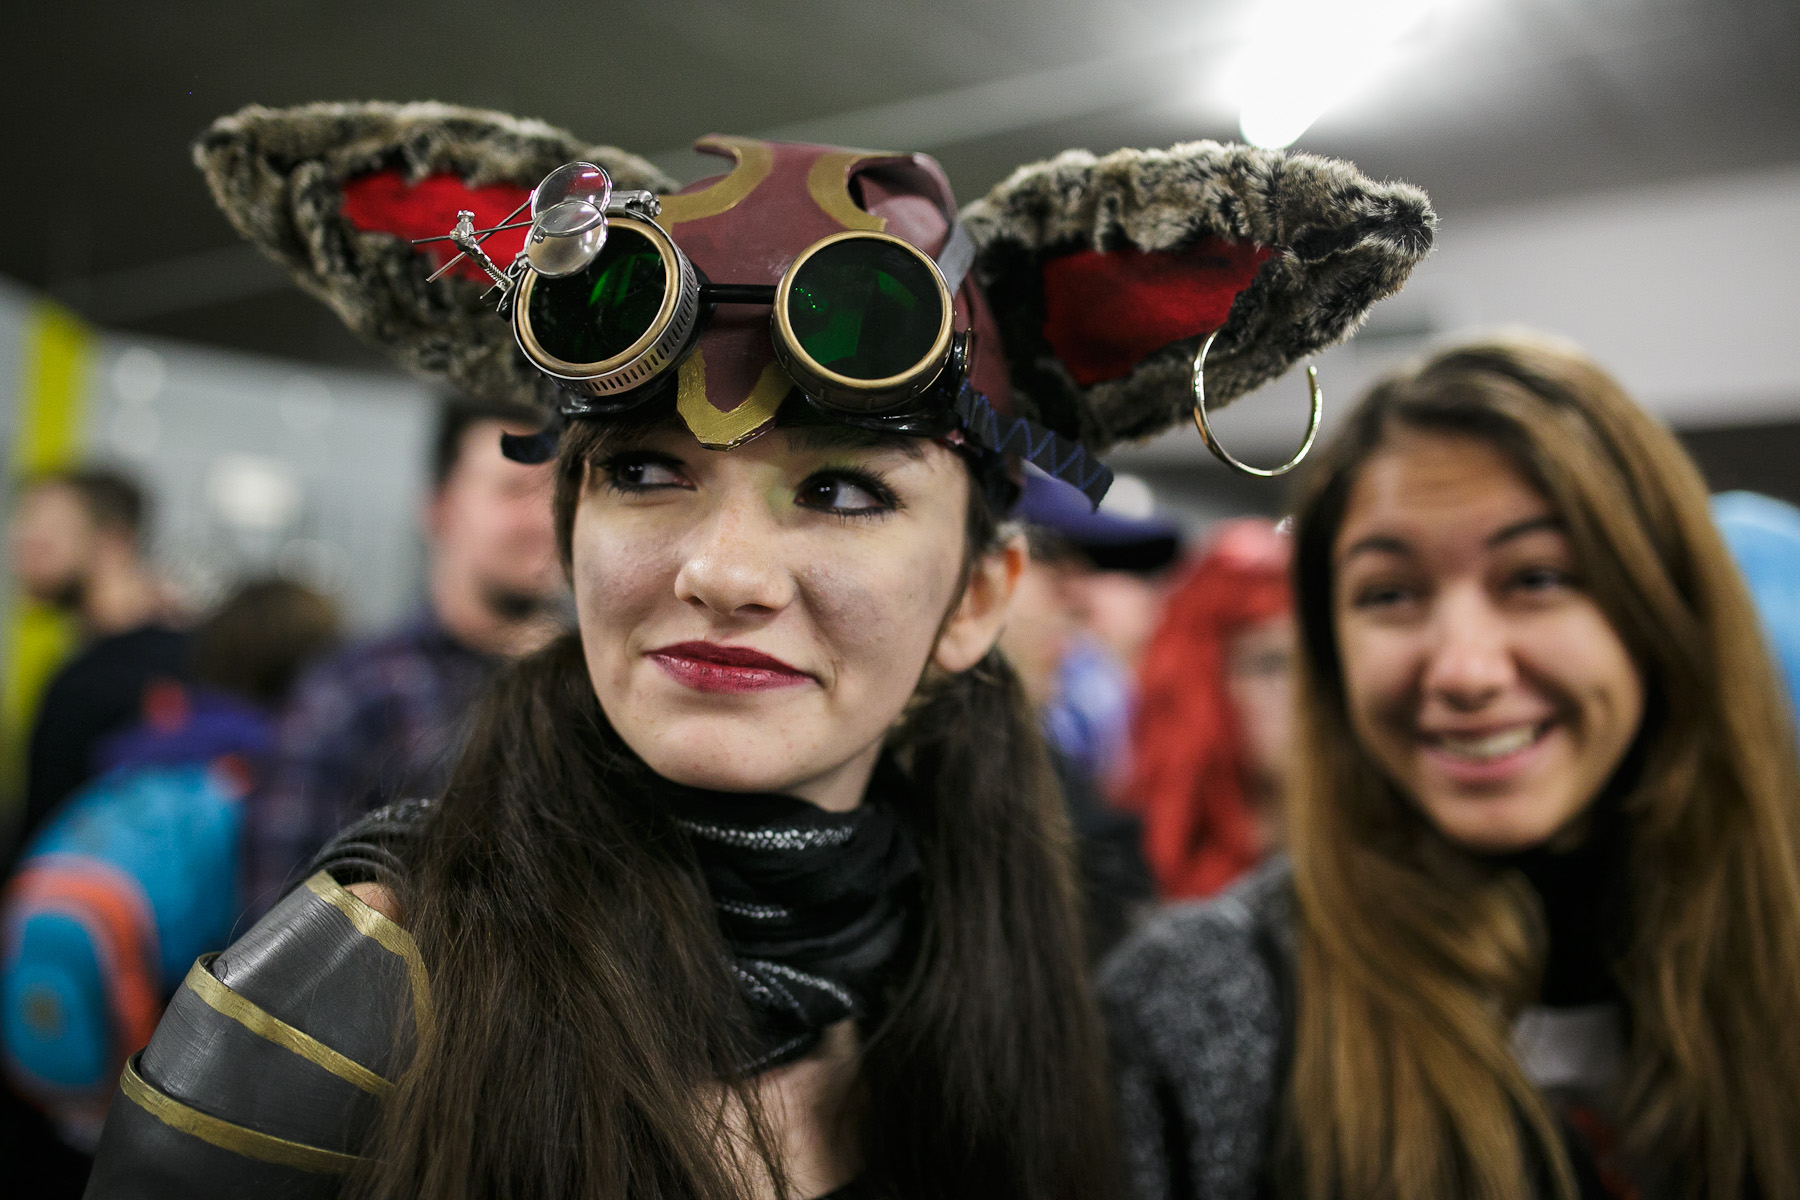 A cosplayer participates in the 4th Makkon, the largest Slovenian anime event, in Ljubljana, Slovenia, Dec. 12, 2015.